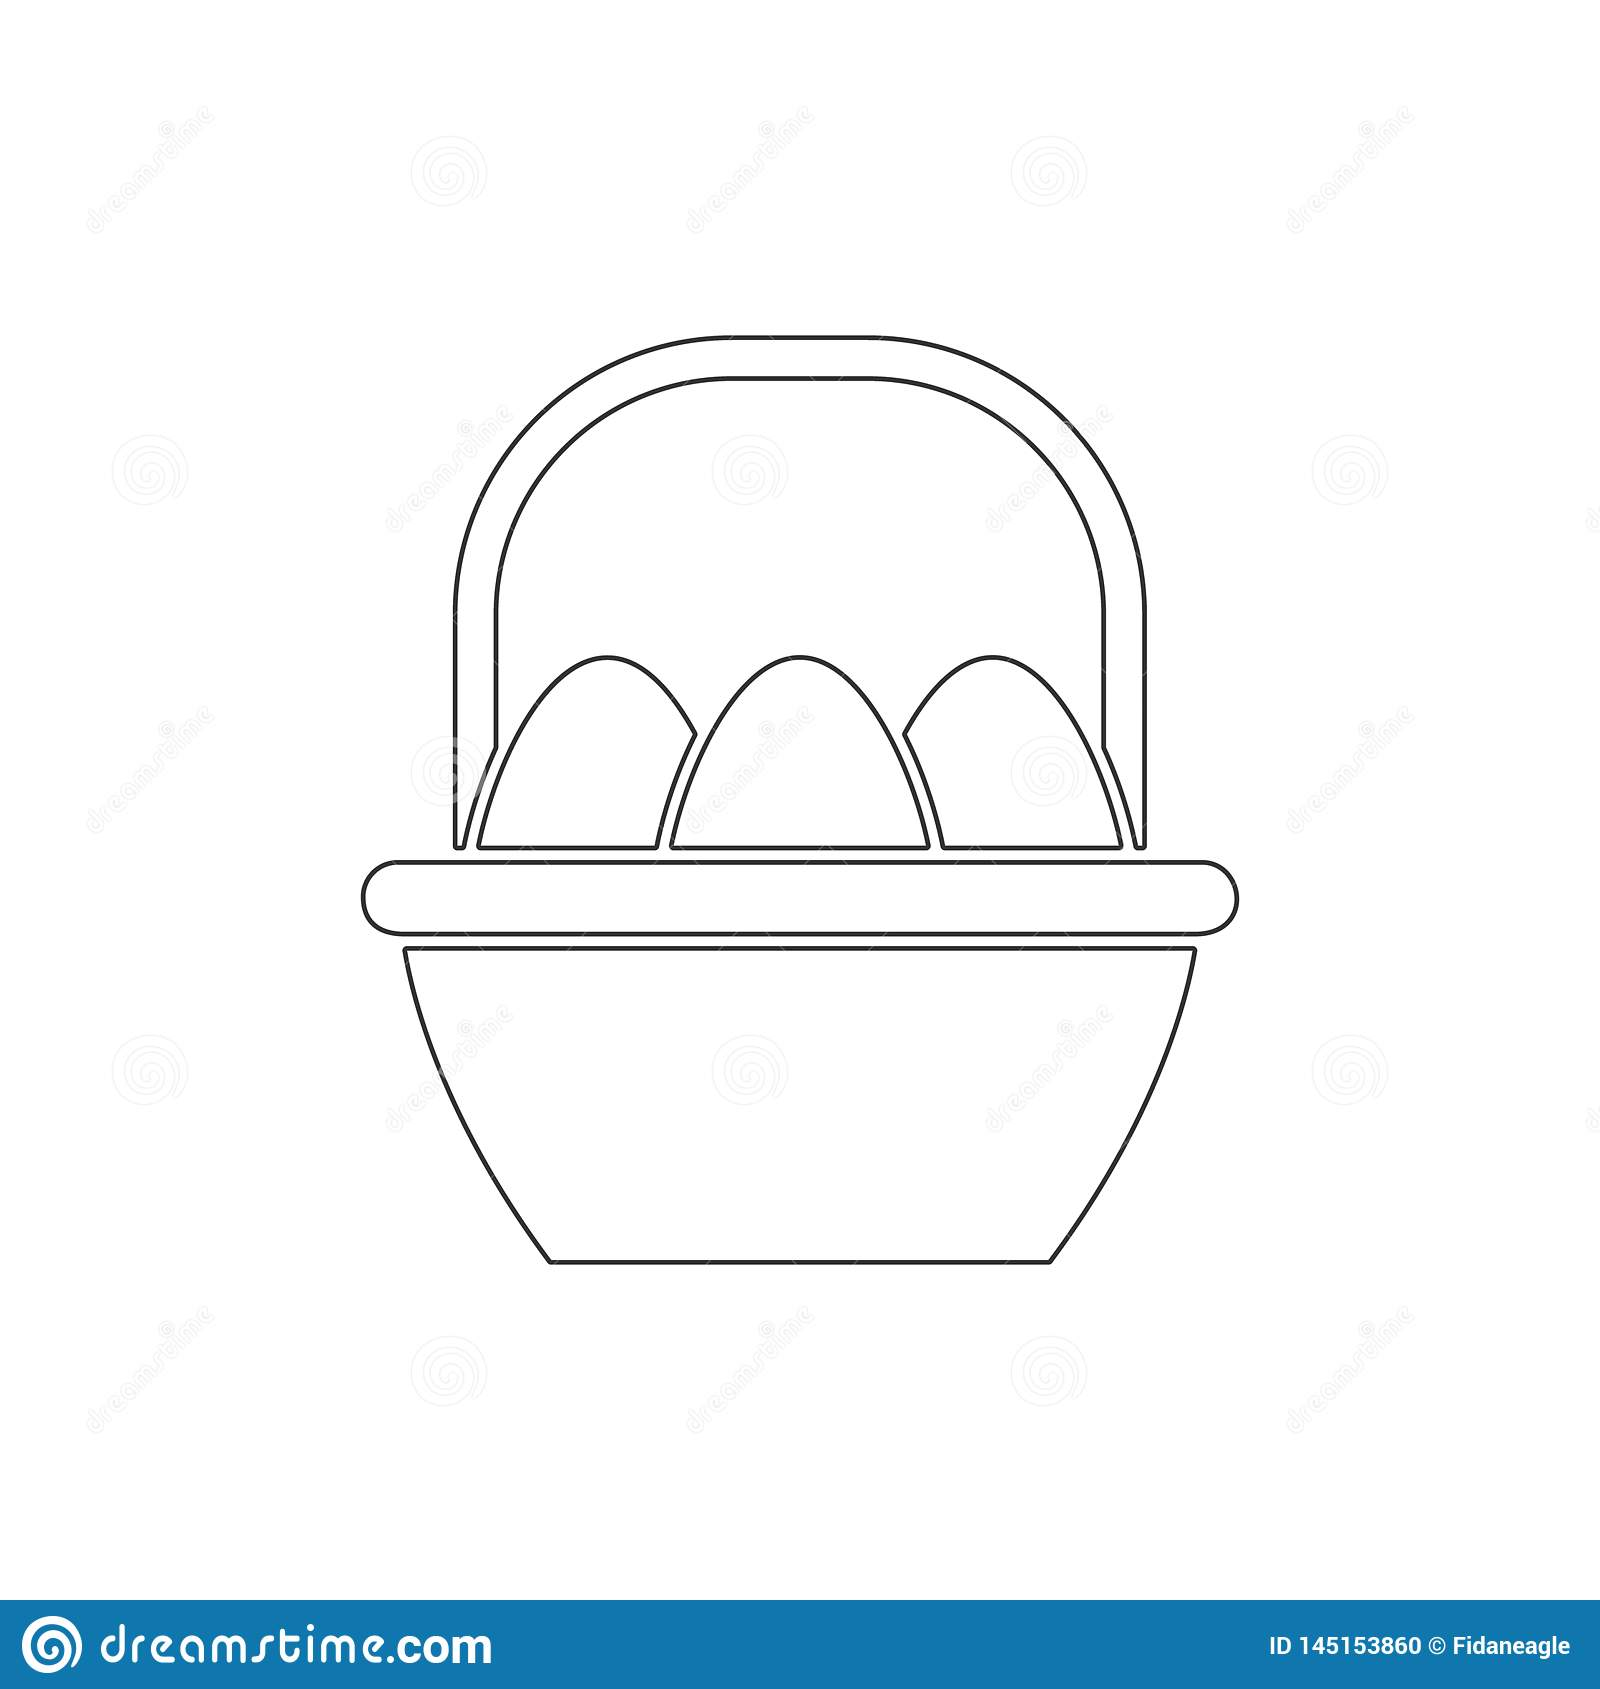 Easter eggs in basket outline icon. Elements of Easter illustration icon. Signs and symbols can be used for web, logo, mobile app